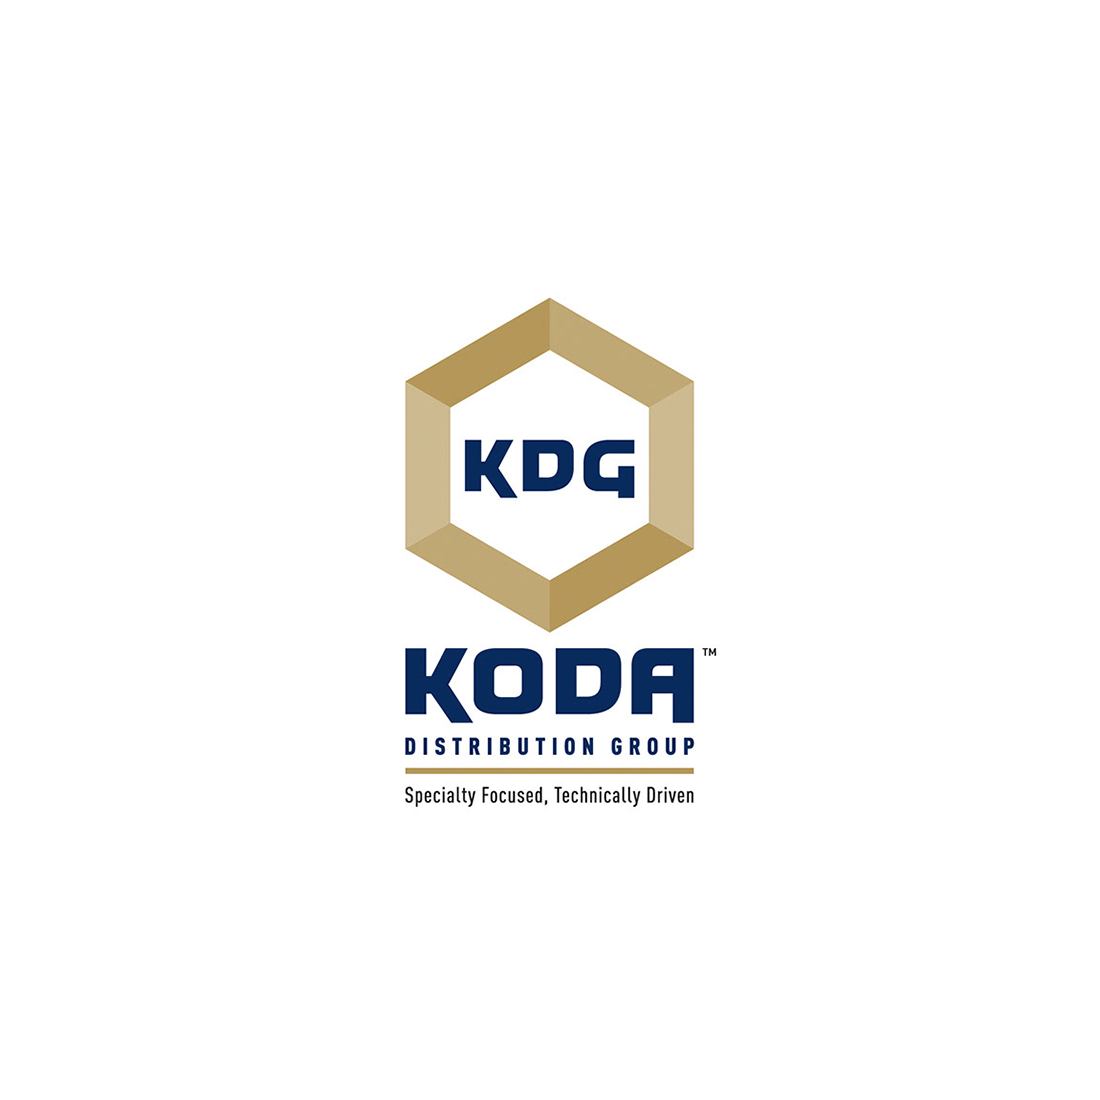 Koda Distribution Group